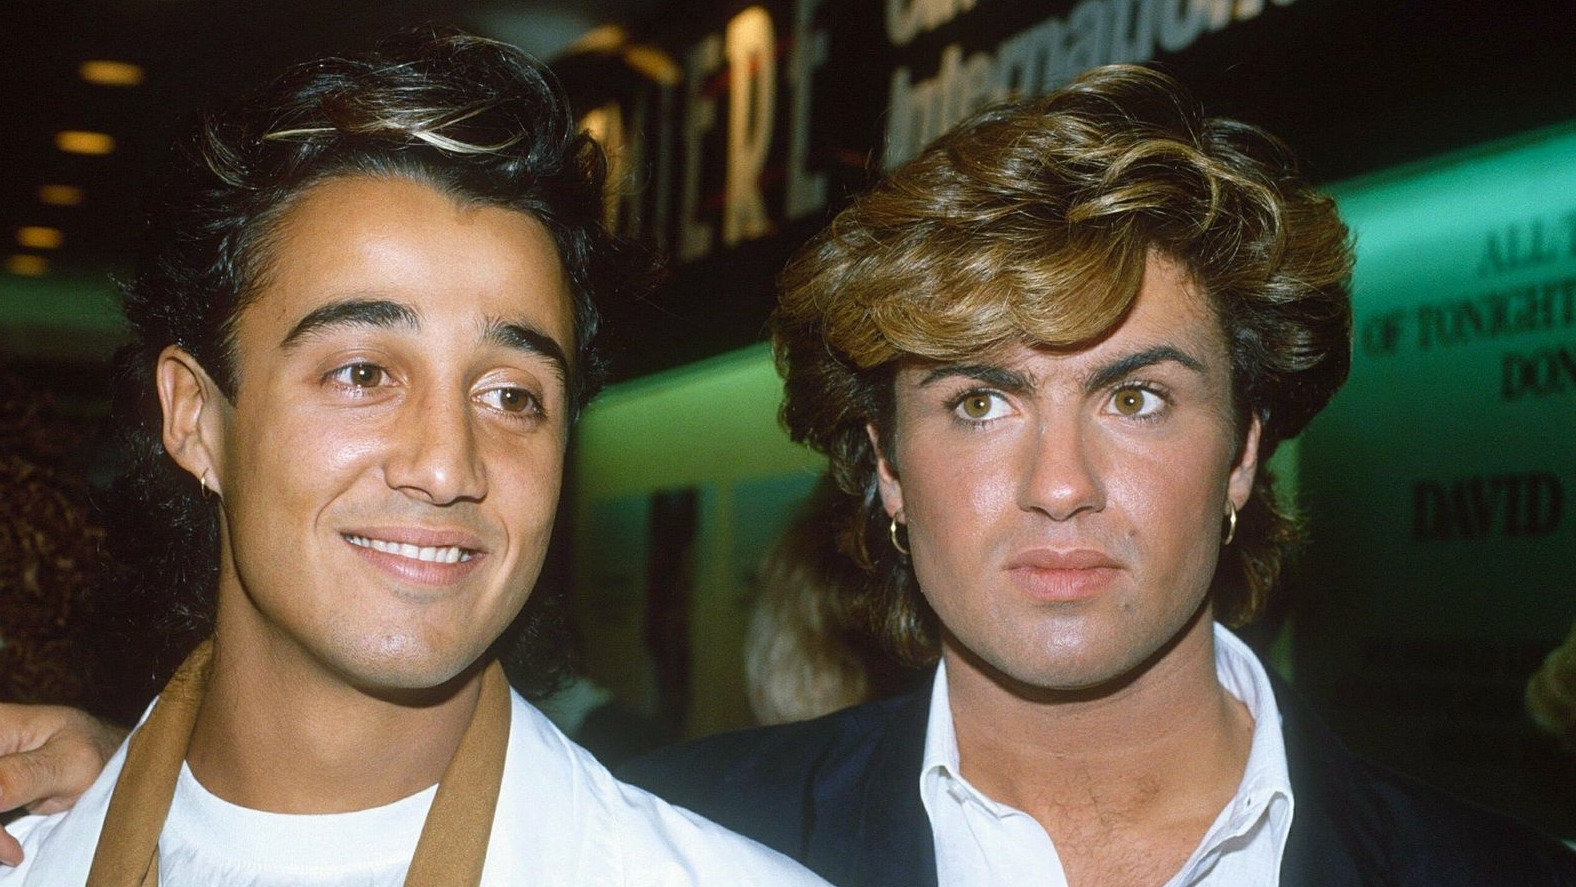 Last Christmas: Wham's festive smash finally hits number one - 36 years after original release